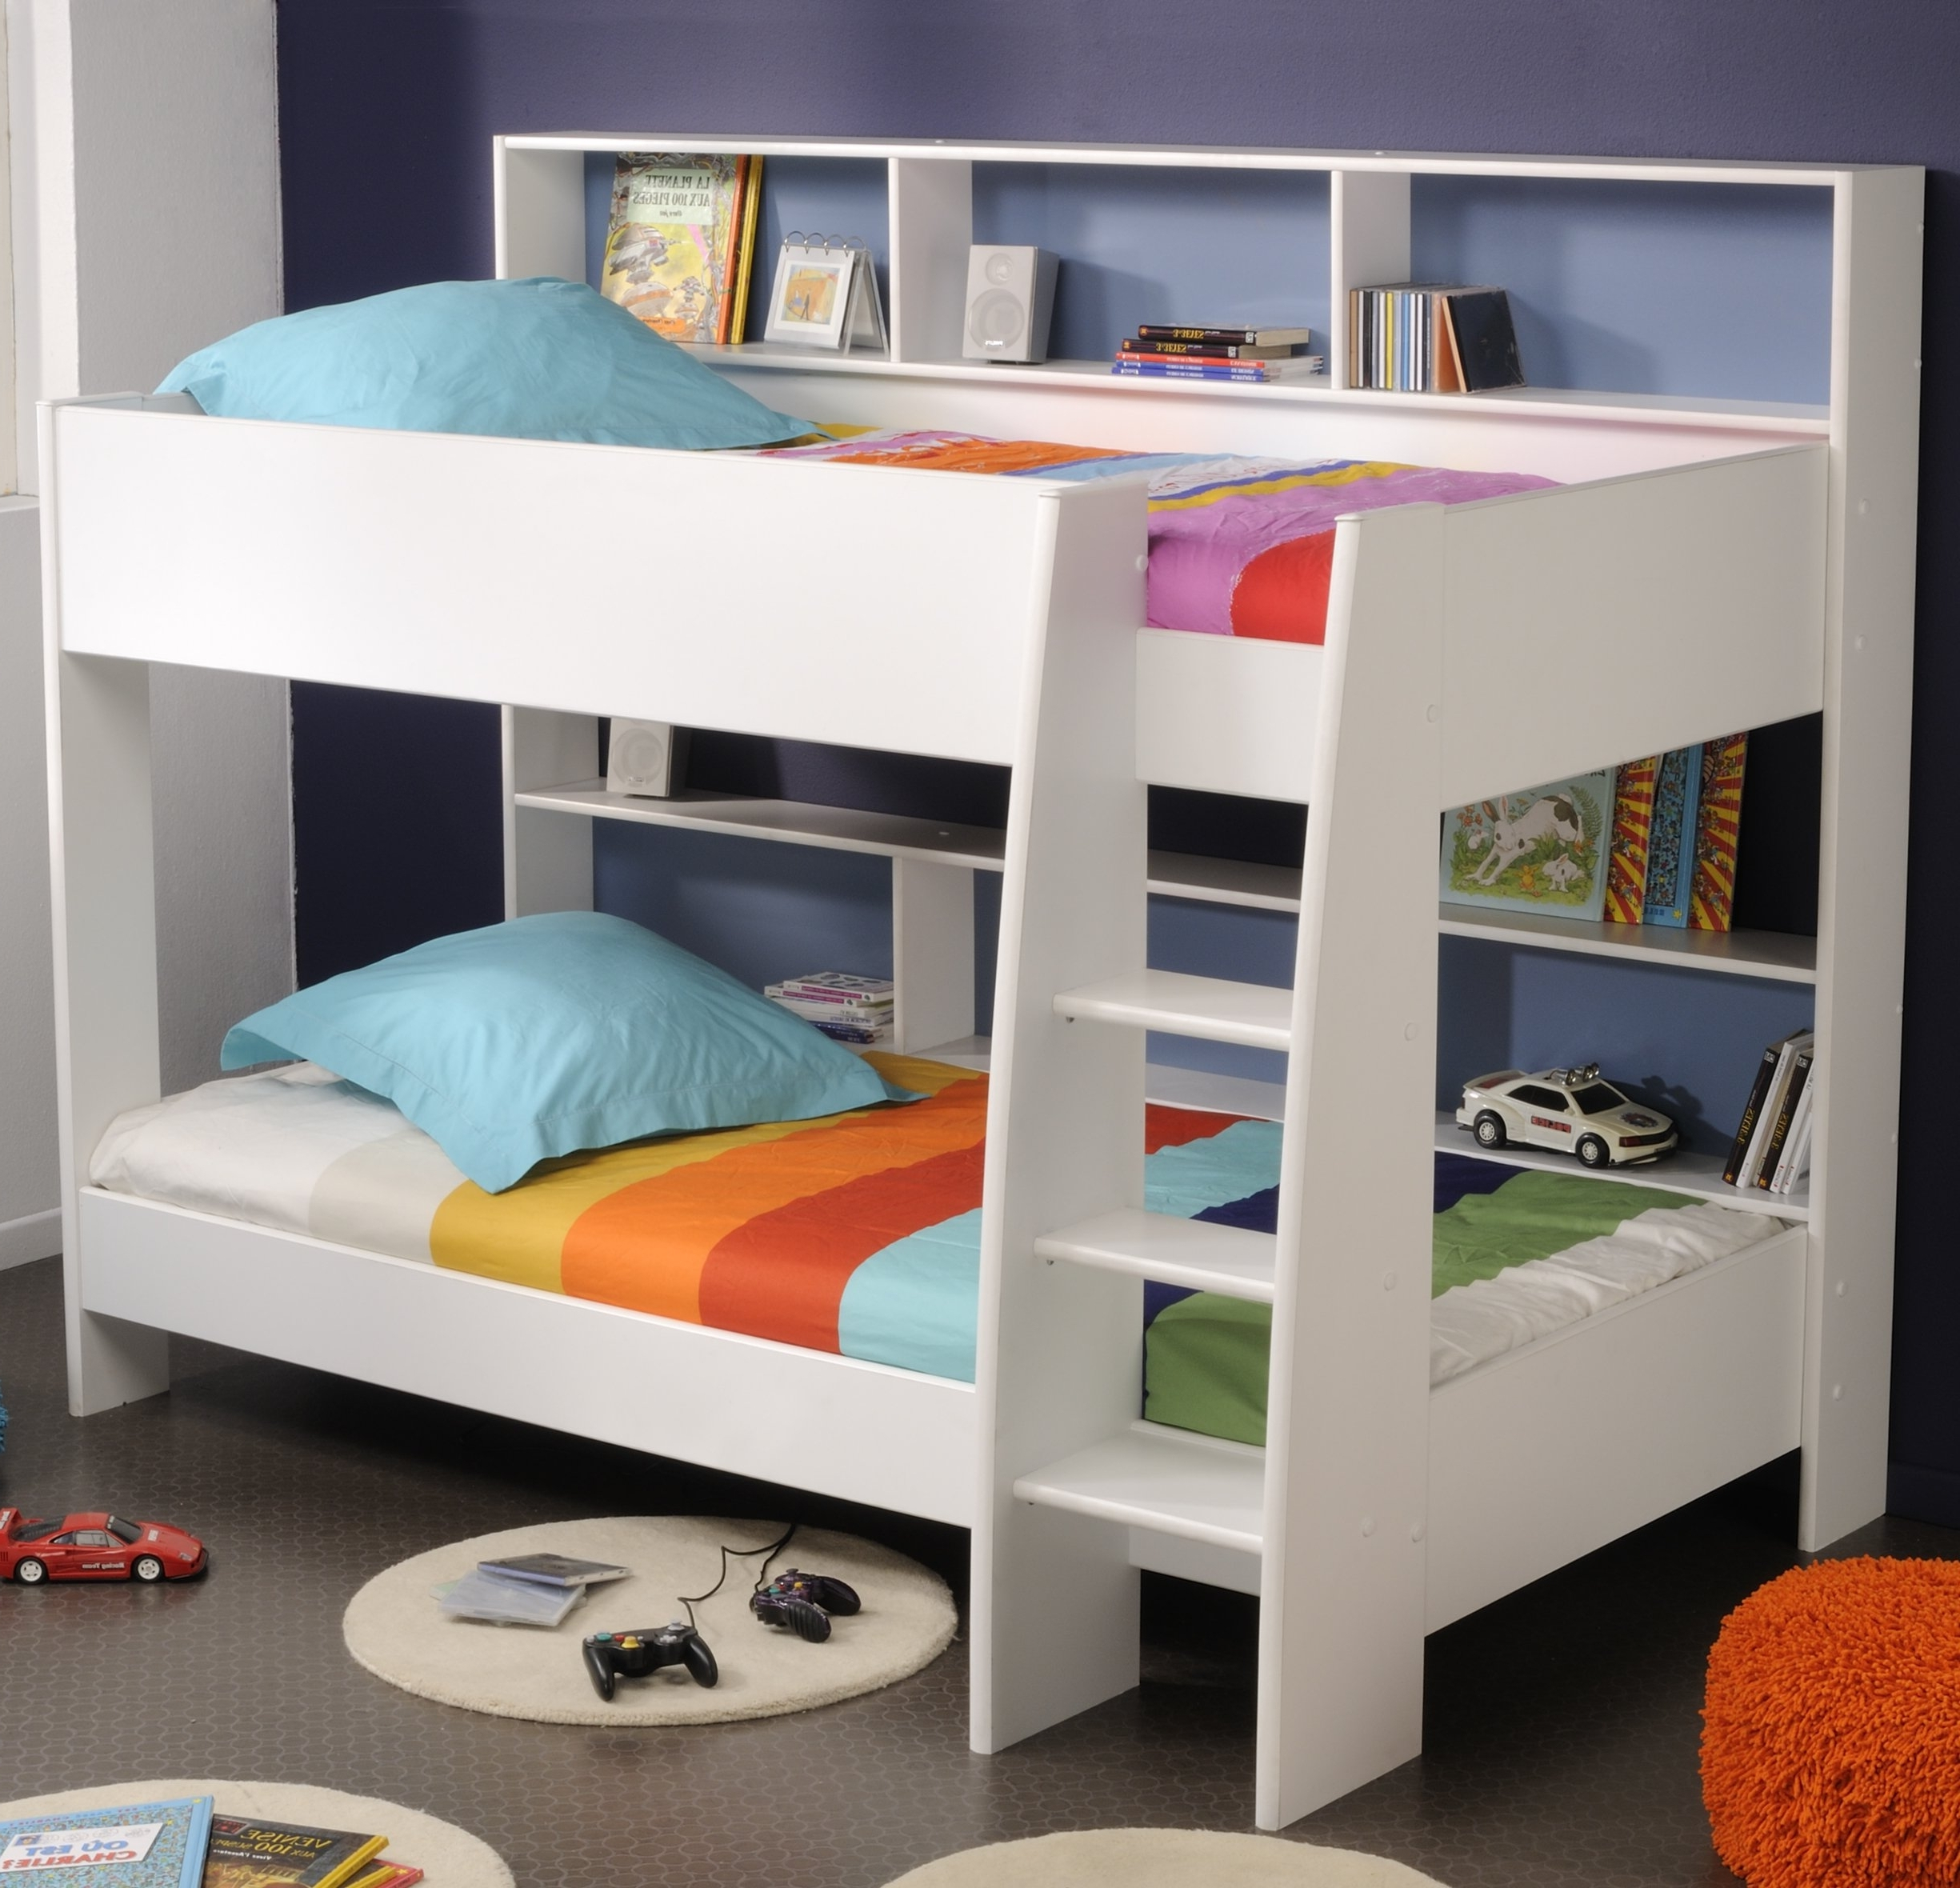 Incredible Style and Modern Bunk Beds for Kids Bedroom: Futon Bunk Bed With Desk | Modern Bunk Beds | Wood Bunk Bed Plans